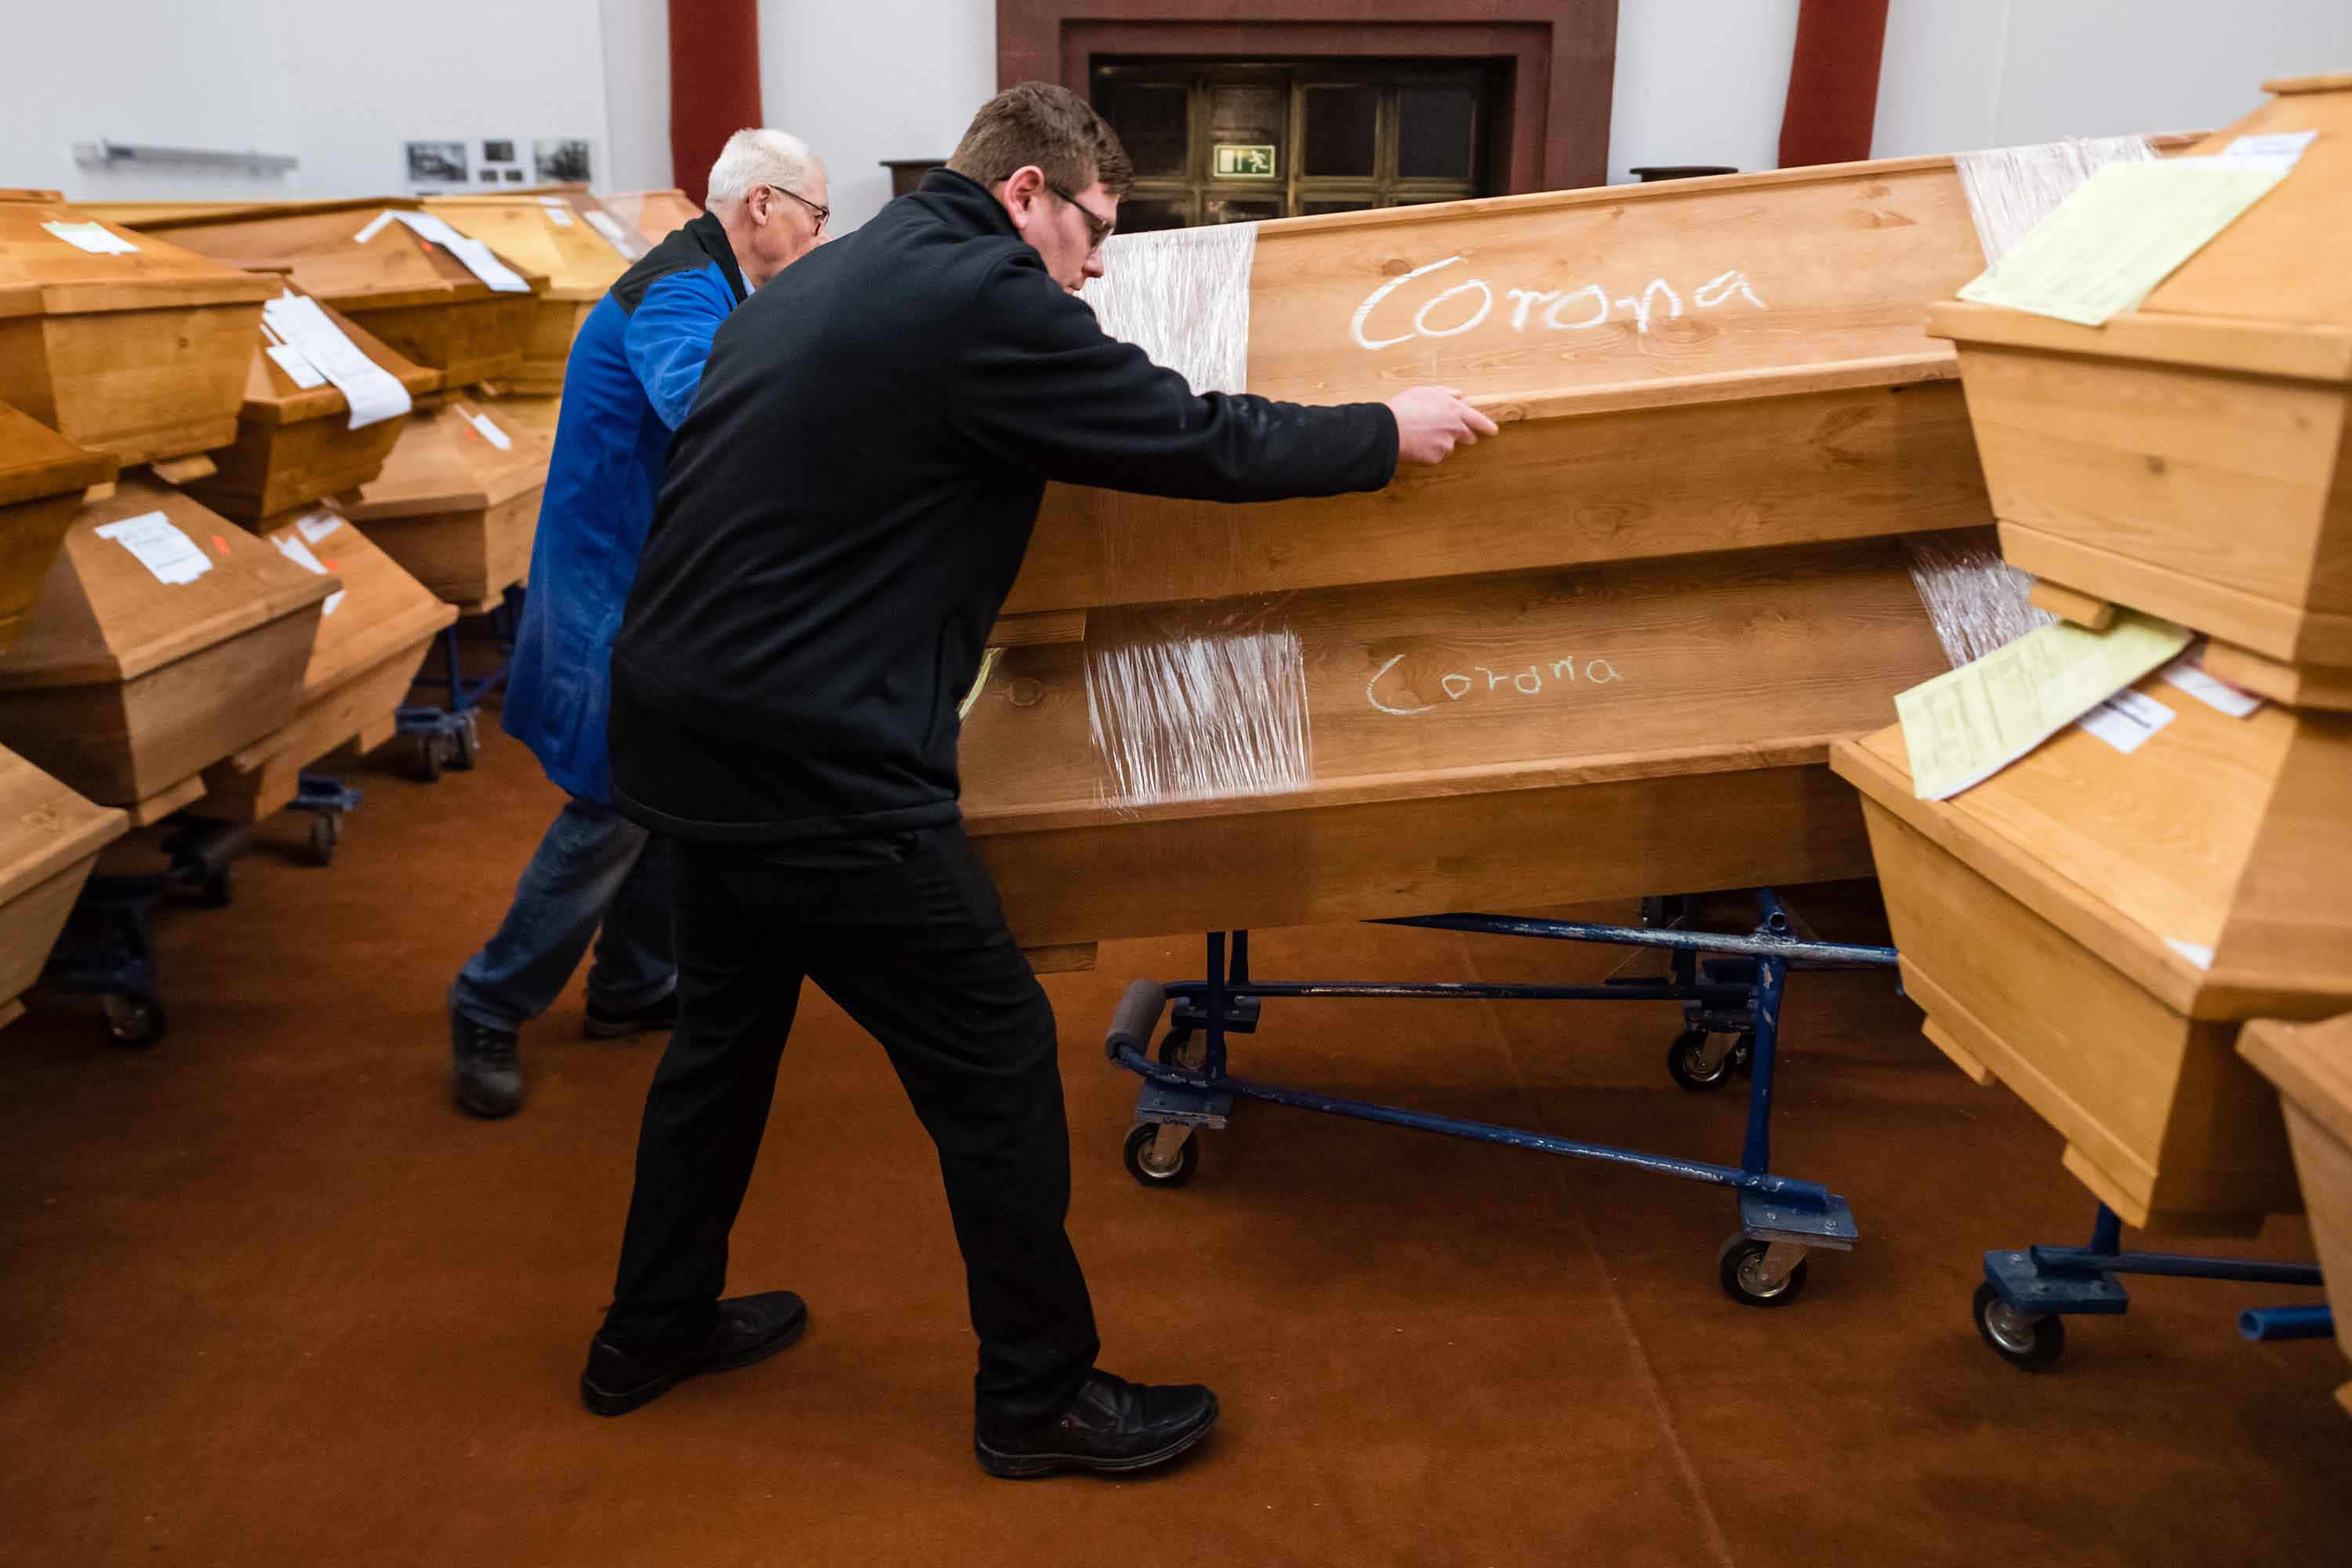 A worker moves a coffin at a crematorium in Meissen, Germany, on January 13.